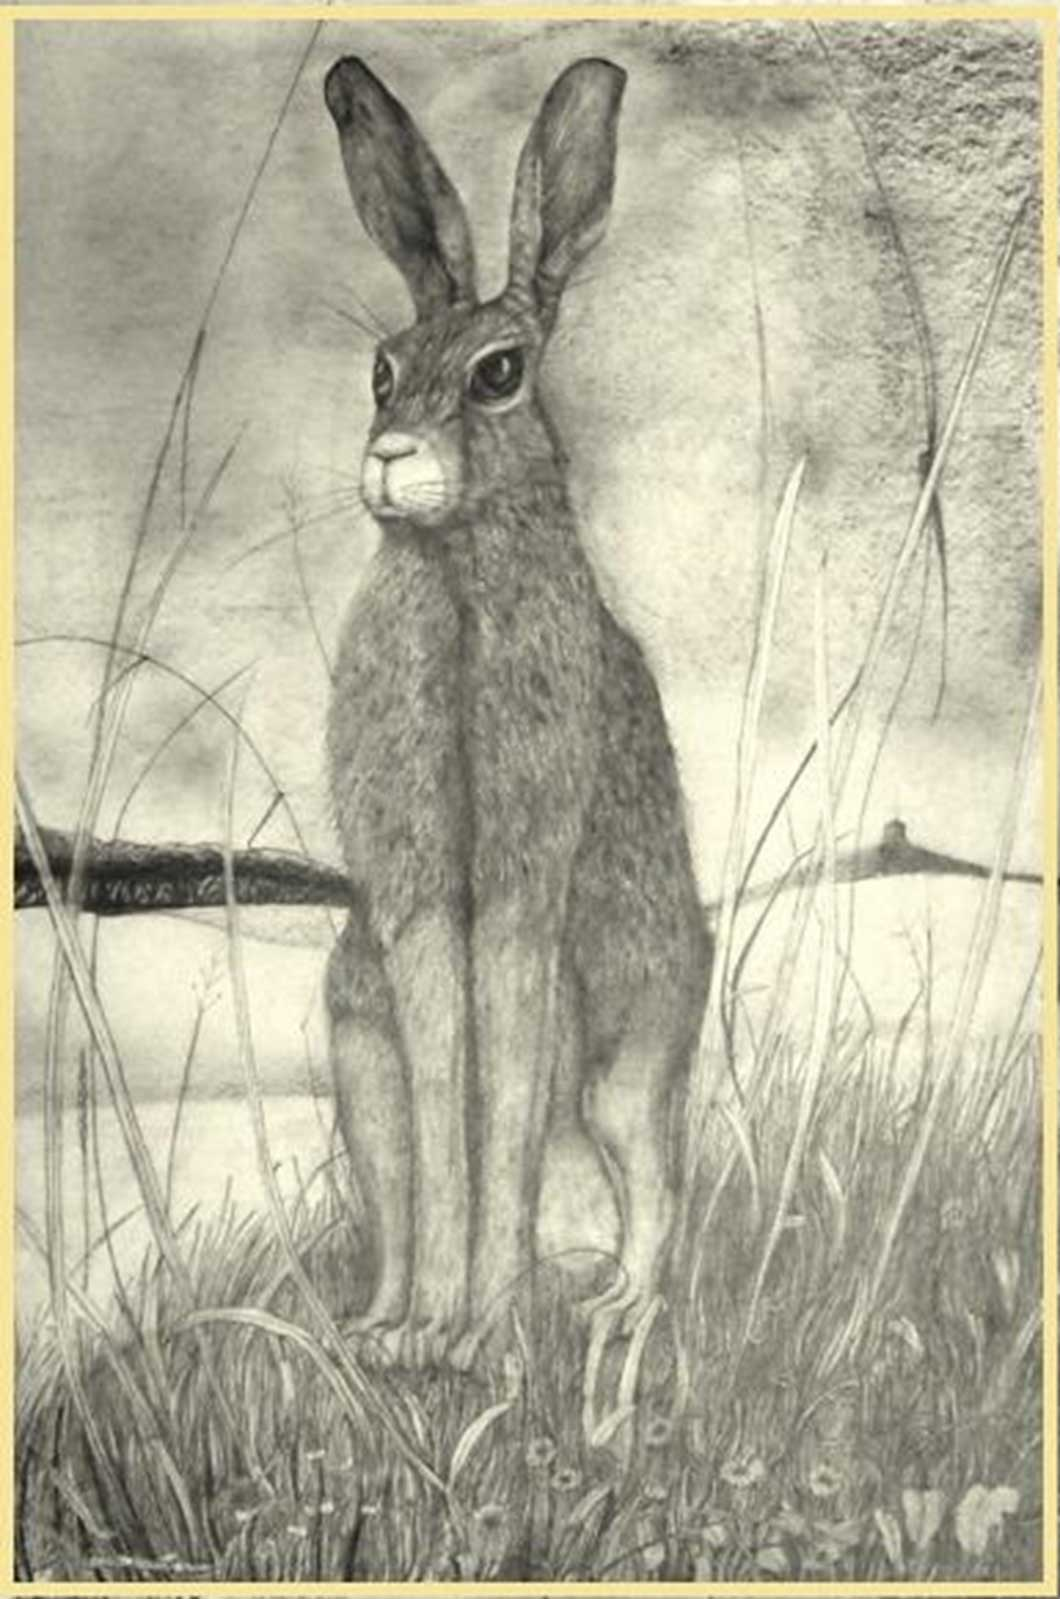 Talusman Fine Art Sean Jefferson - 'Hare Aristocracy' (We have a large selection of Sean Jefferson works)